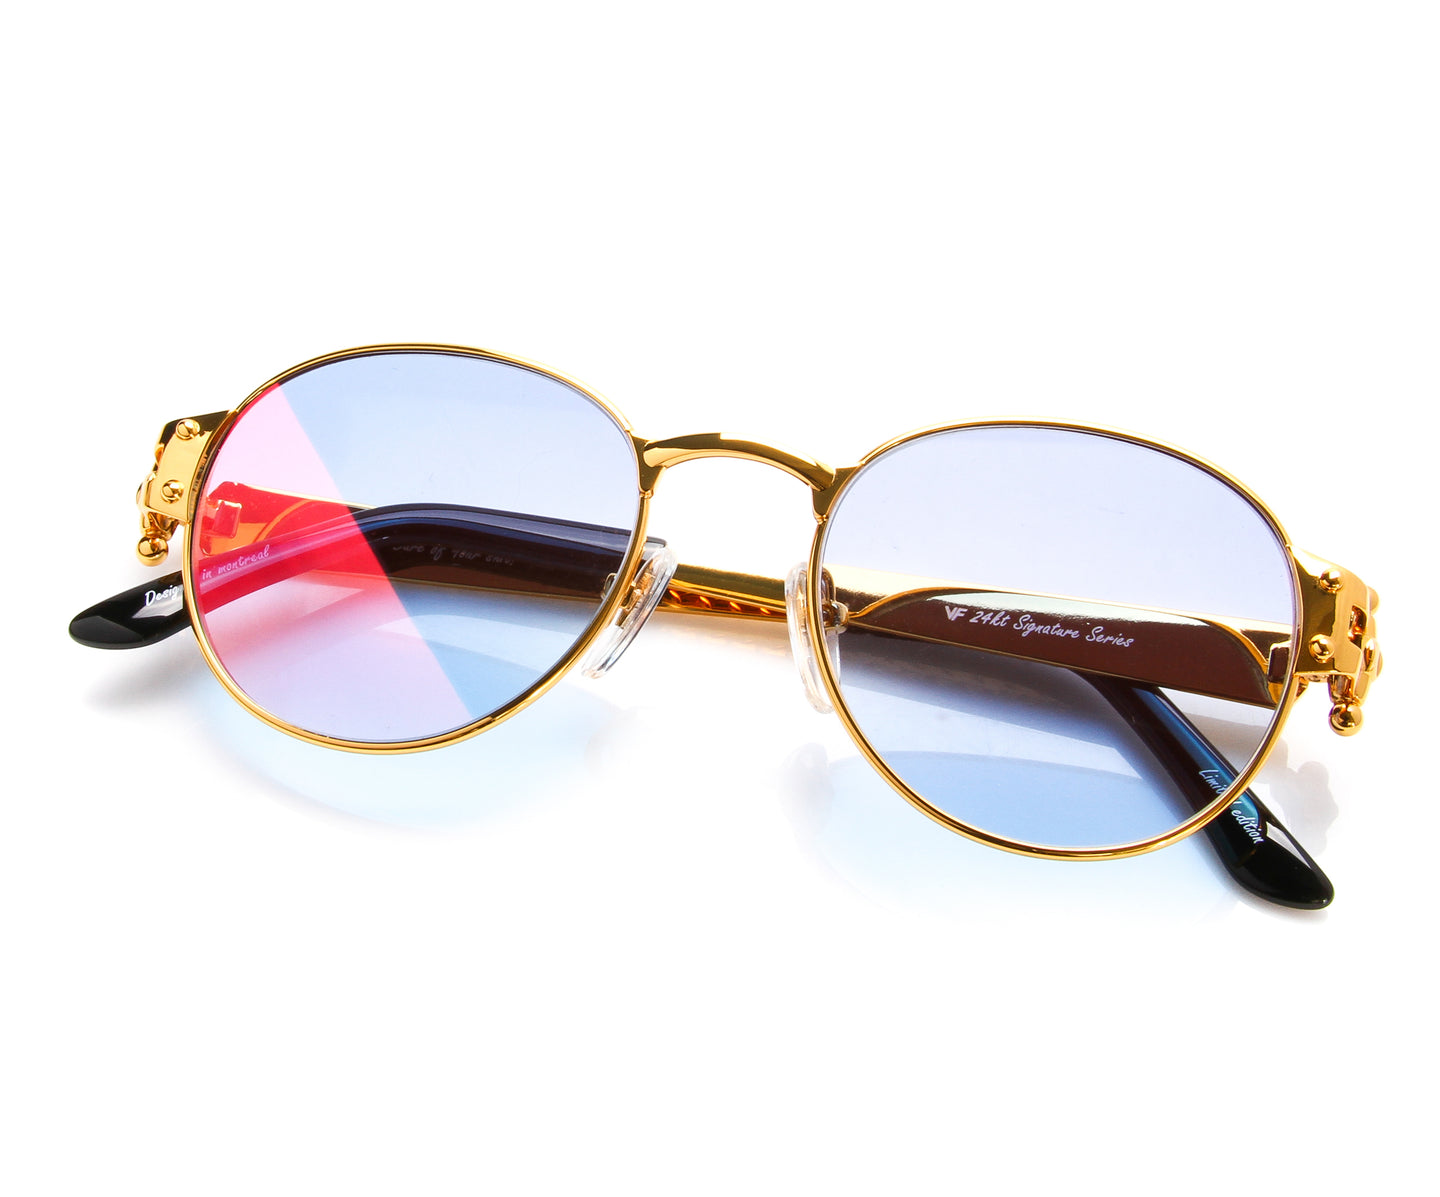 VF 1998 24KT Gold Masterpiece (Two-Tone Mauve), VF Masterpiece , glasses frames, eyeglasses online, eyeglass frames, mens glasses, womens glasses, buy glasses online, designer eyeglasses, vintage sunglasses, retro sunglasses, vintage glasses, sunglass, eyeglass, glasses, lens, vintage frames company, vf